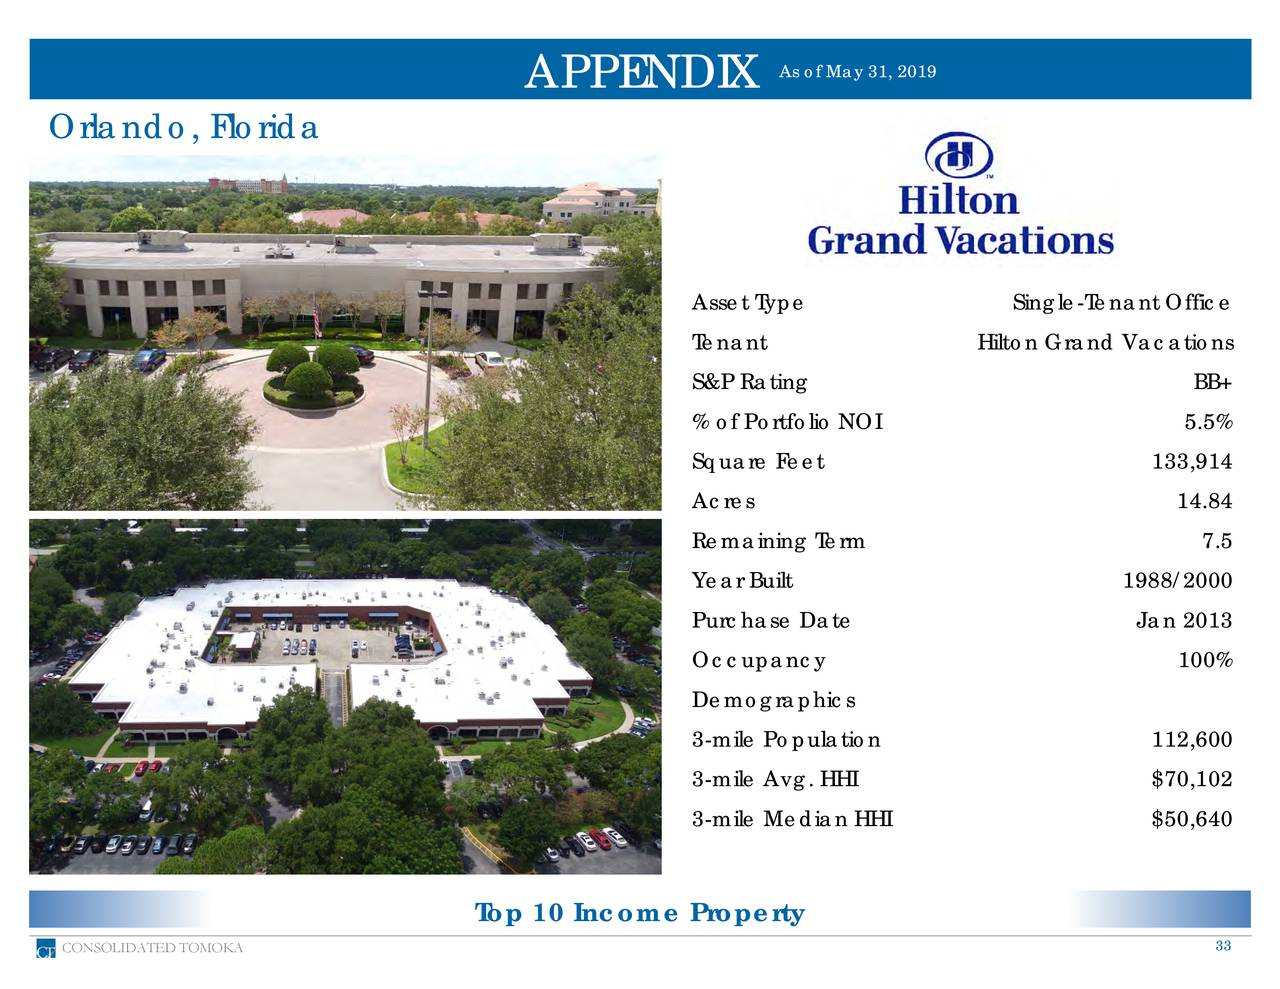 APPENDIX Orlando, Florida Asset Type Single-Tenant Office Tenant Hilton Grand Vacations S&P Rating BB+ % of Portfolio NOI 5.5% Square Feet 133,914 Acres 14.84 Remaining Term 7.5 Year Built 1988/2000 Purchase Date Jan 2013 Occupancy 100% Demographics 3-mile Population 112,600 3-mile Avg. HHI $70,102 3-mile Median HHI $50,640 Top 10 Income Property CONSOLIDATED TOMOKA 33